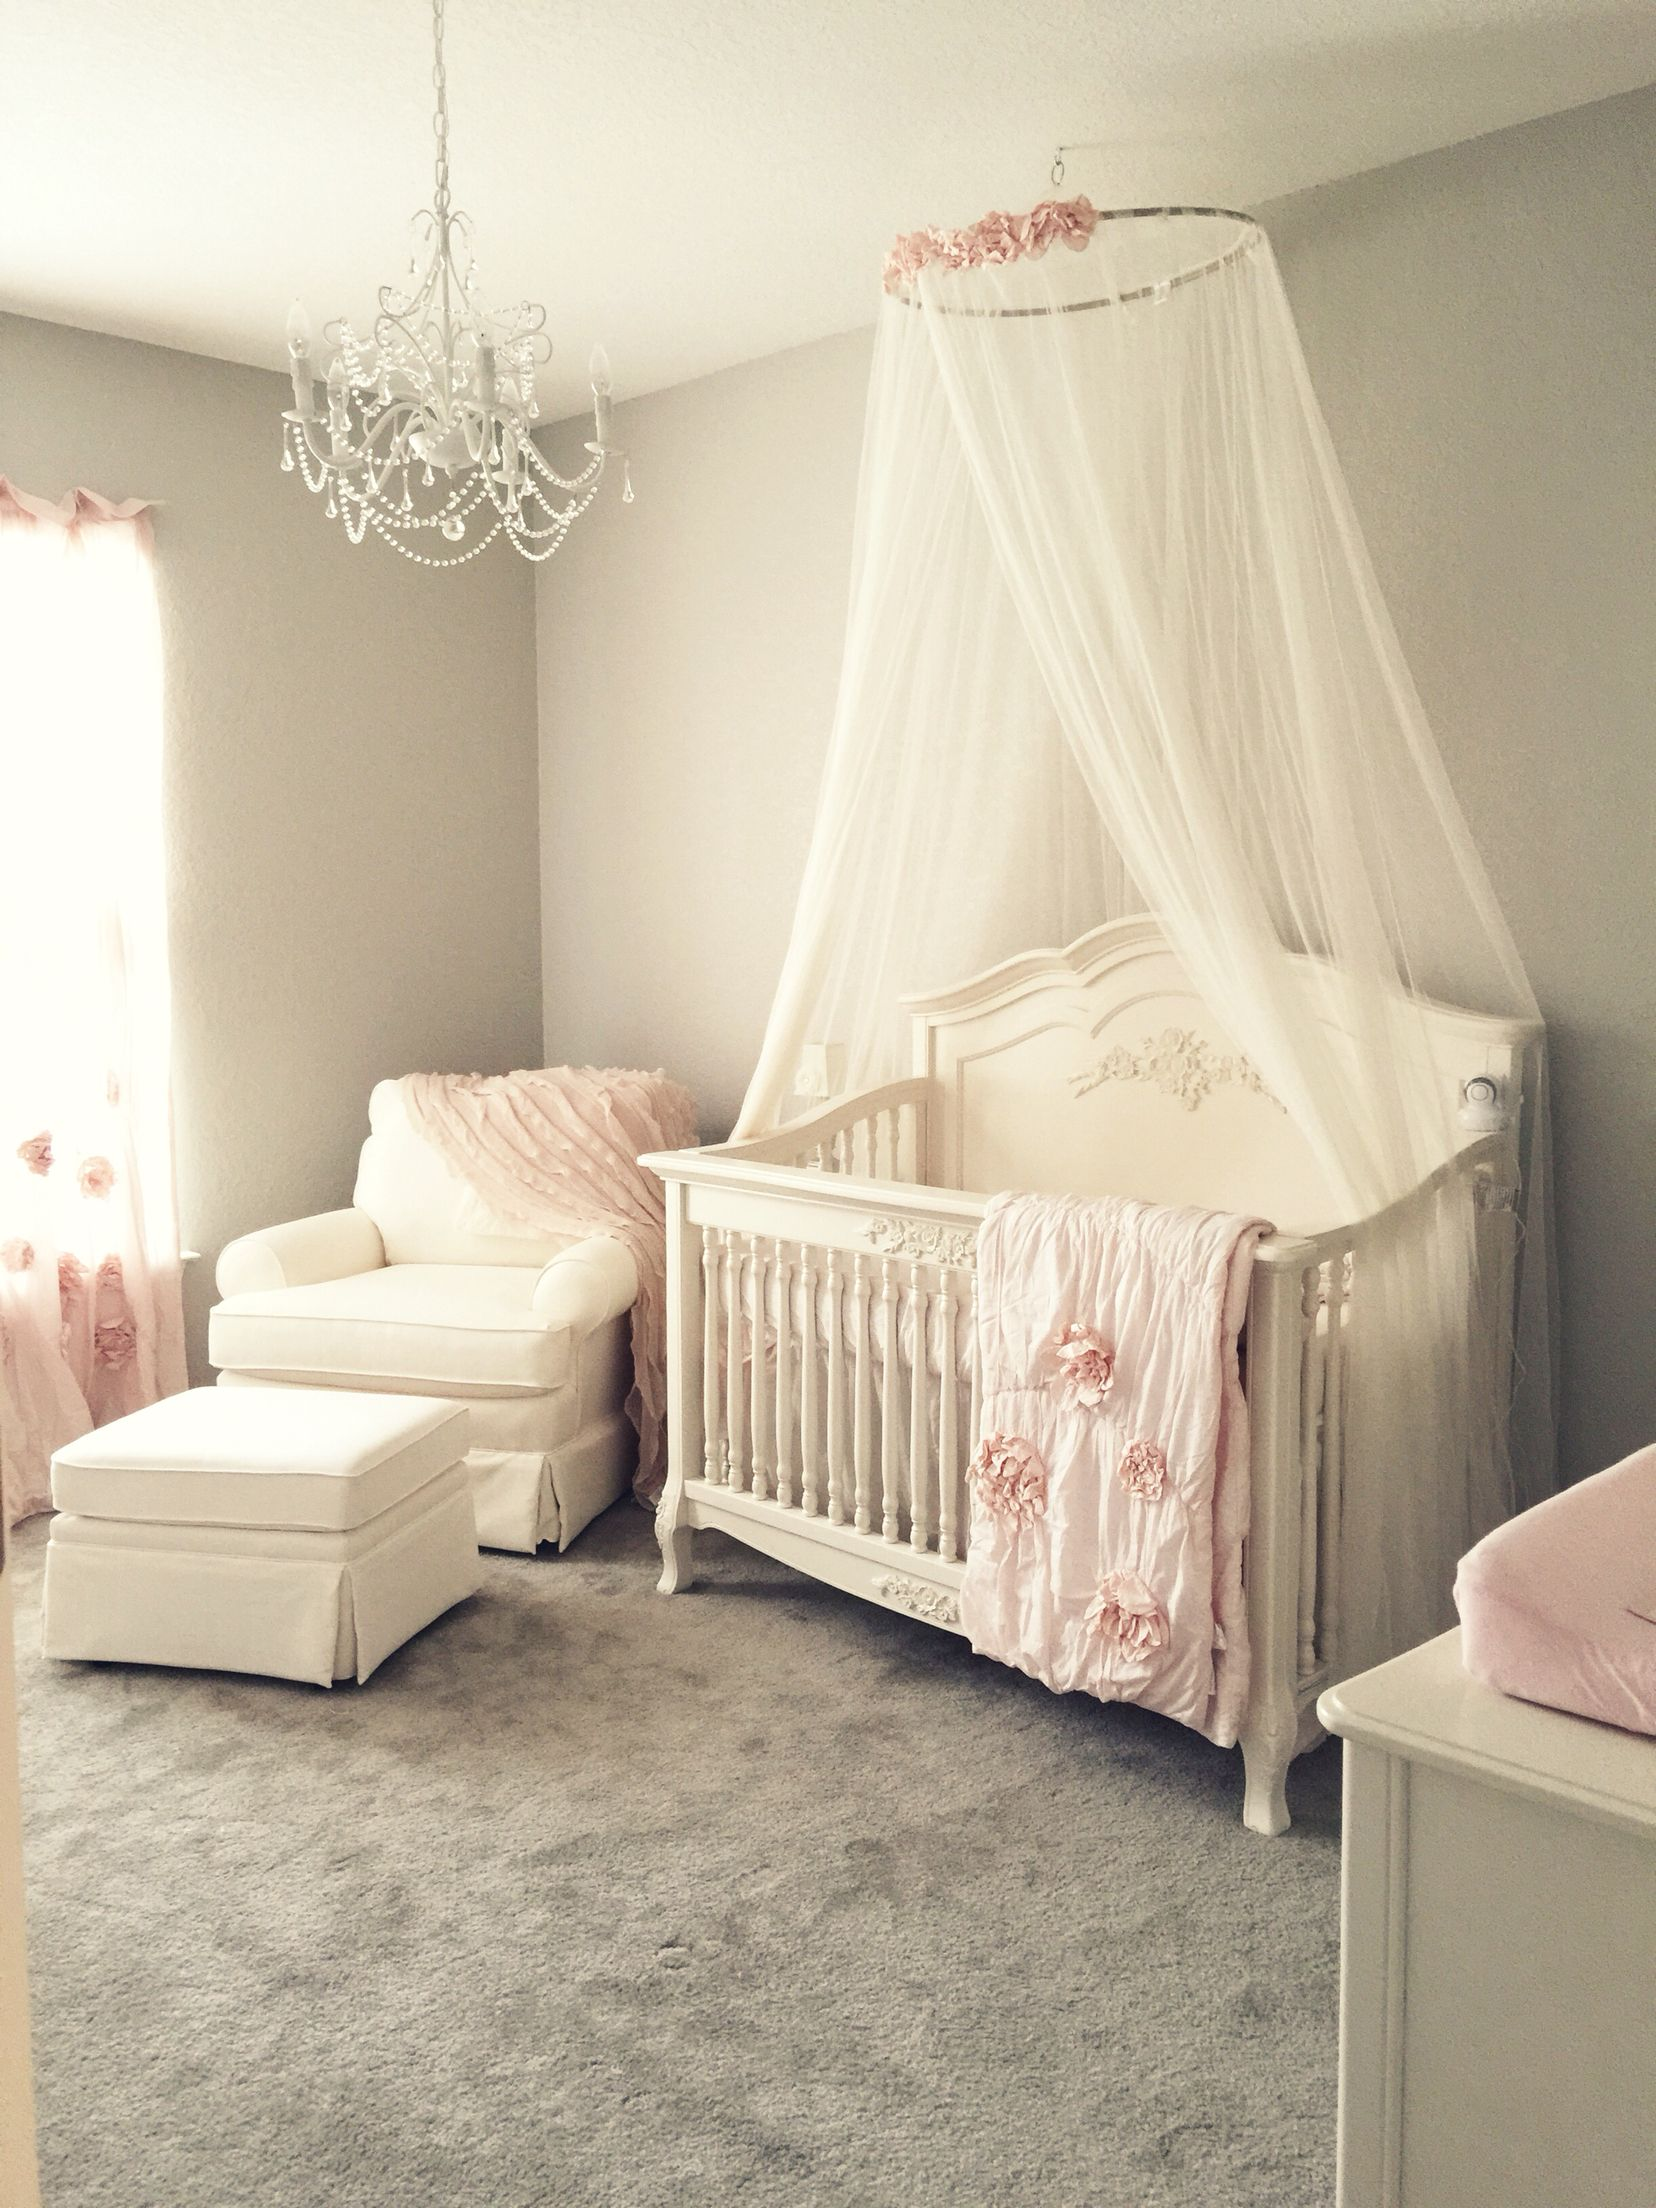 Girly pink blush nursery with chandelier ivory